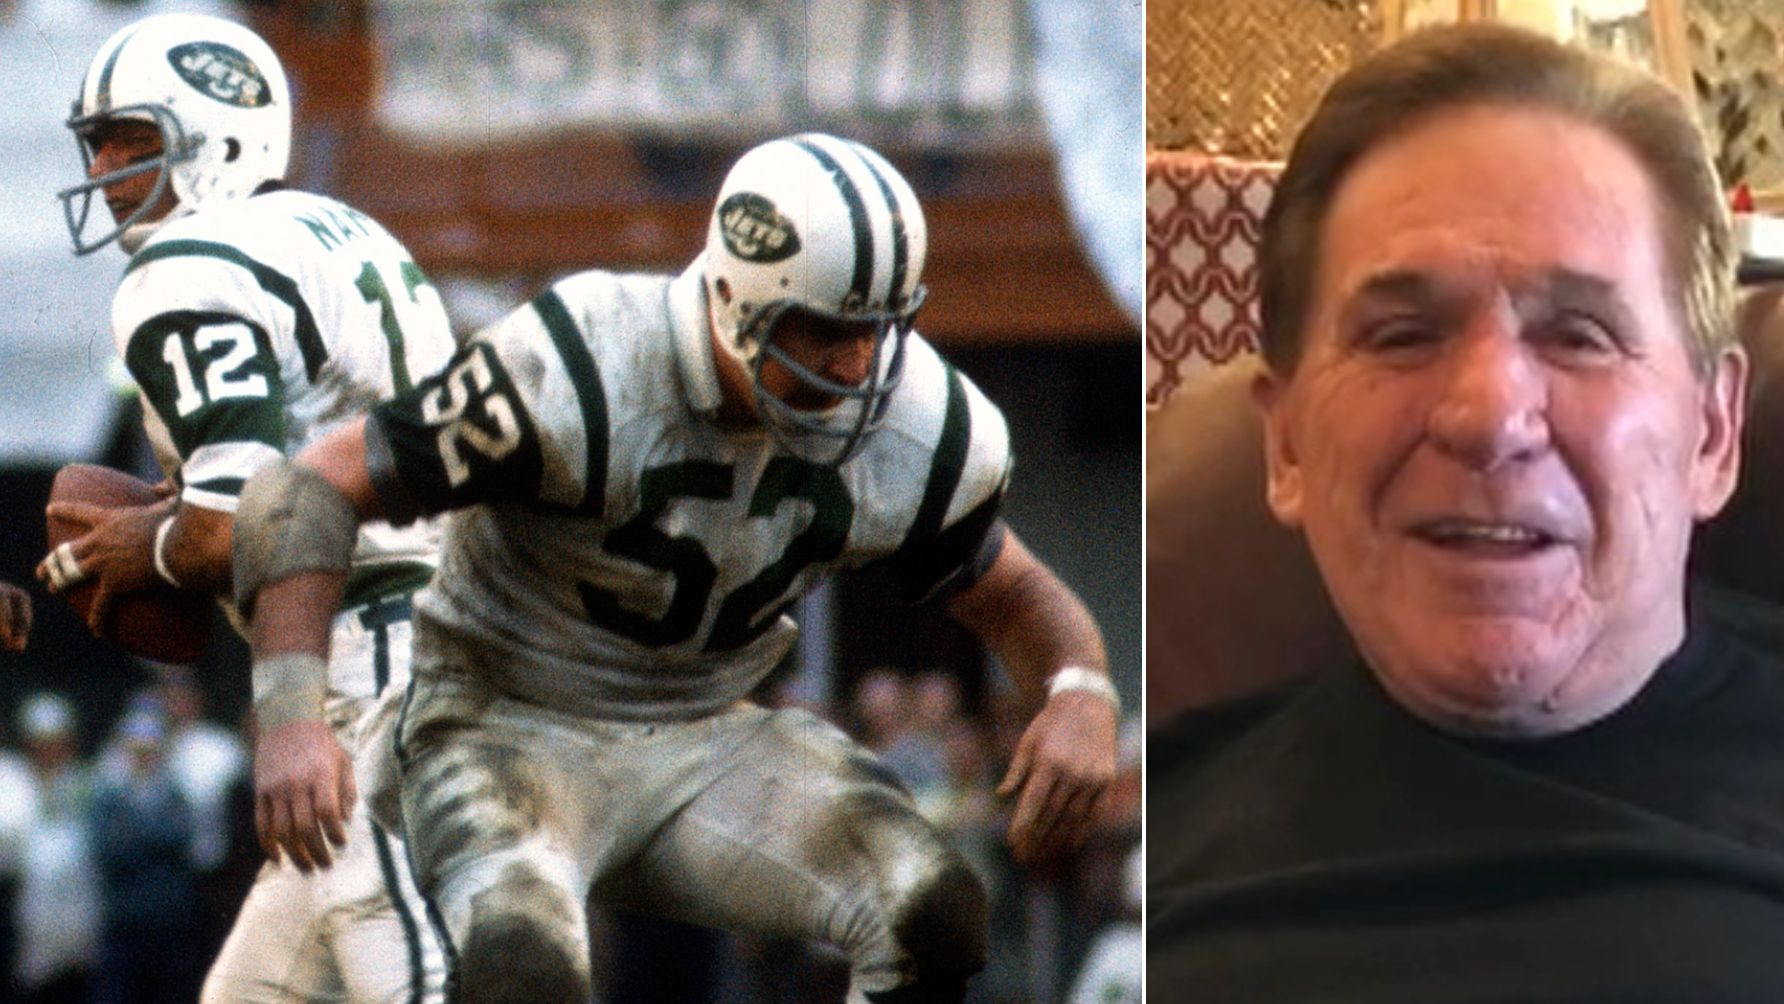 Super Bowl III champion gets lost ring back 40 years later